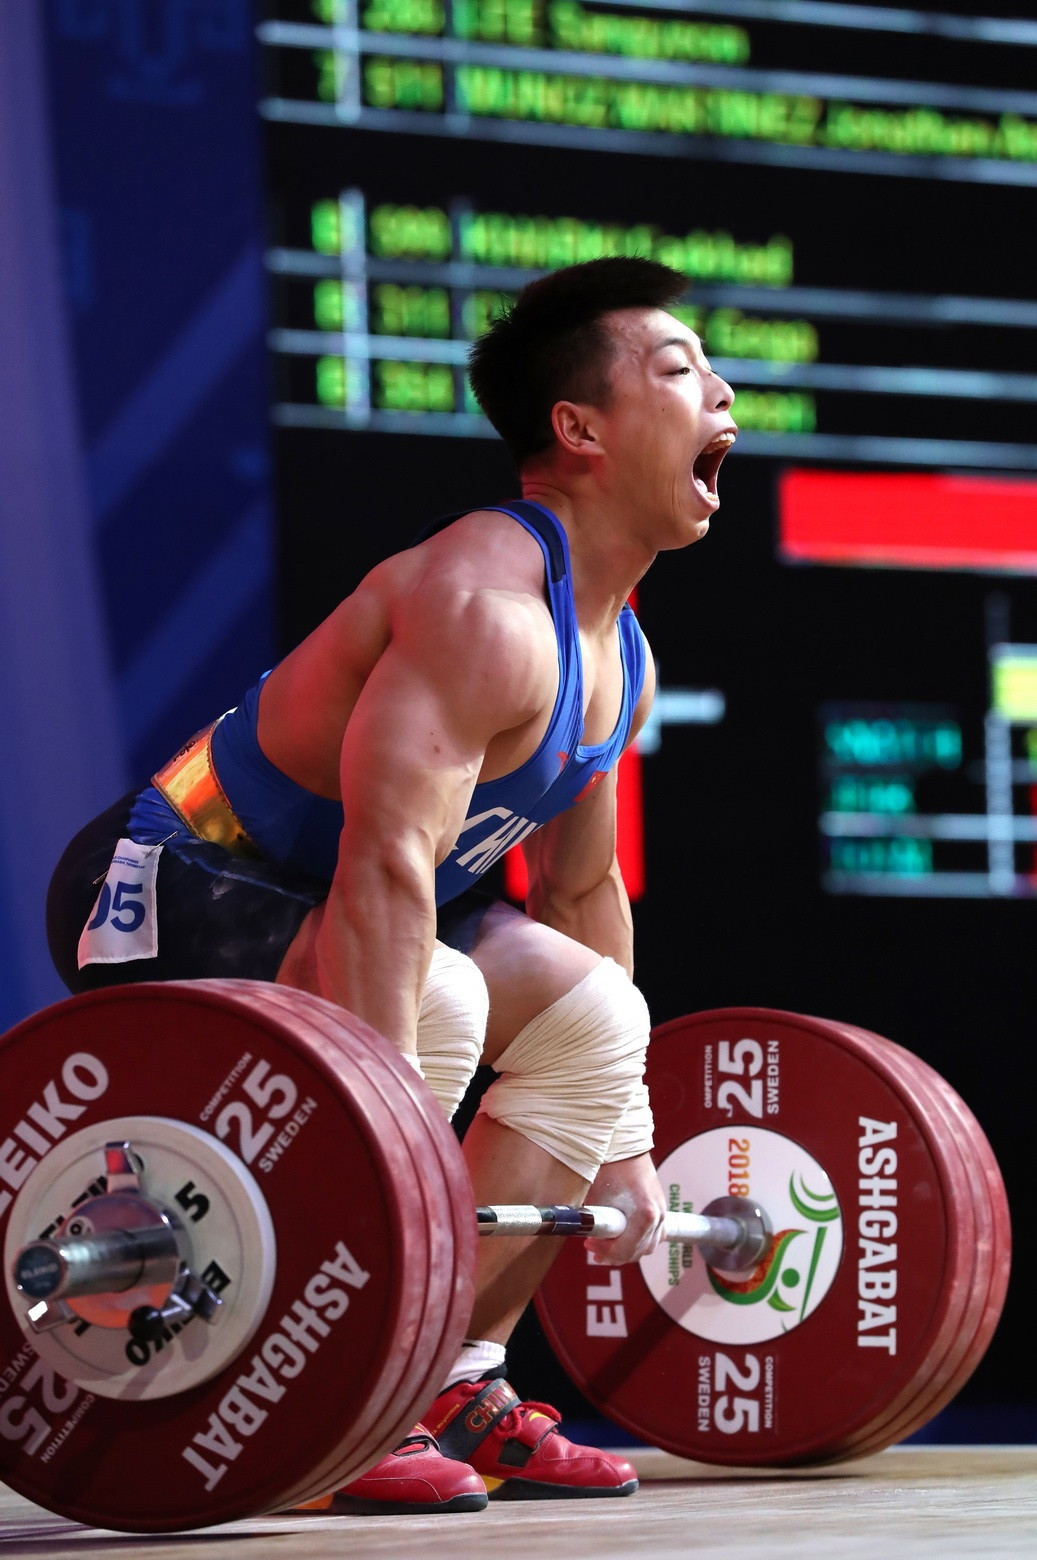 China's Chen Lijun broke the world standard total to top the men's 67kg podium ©IWF